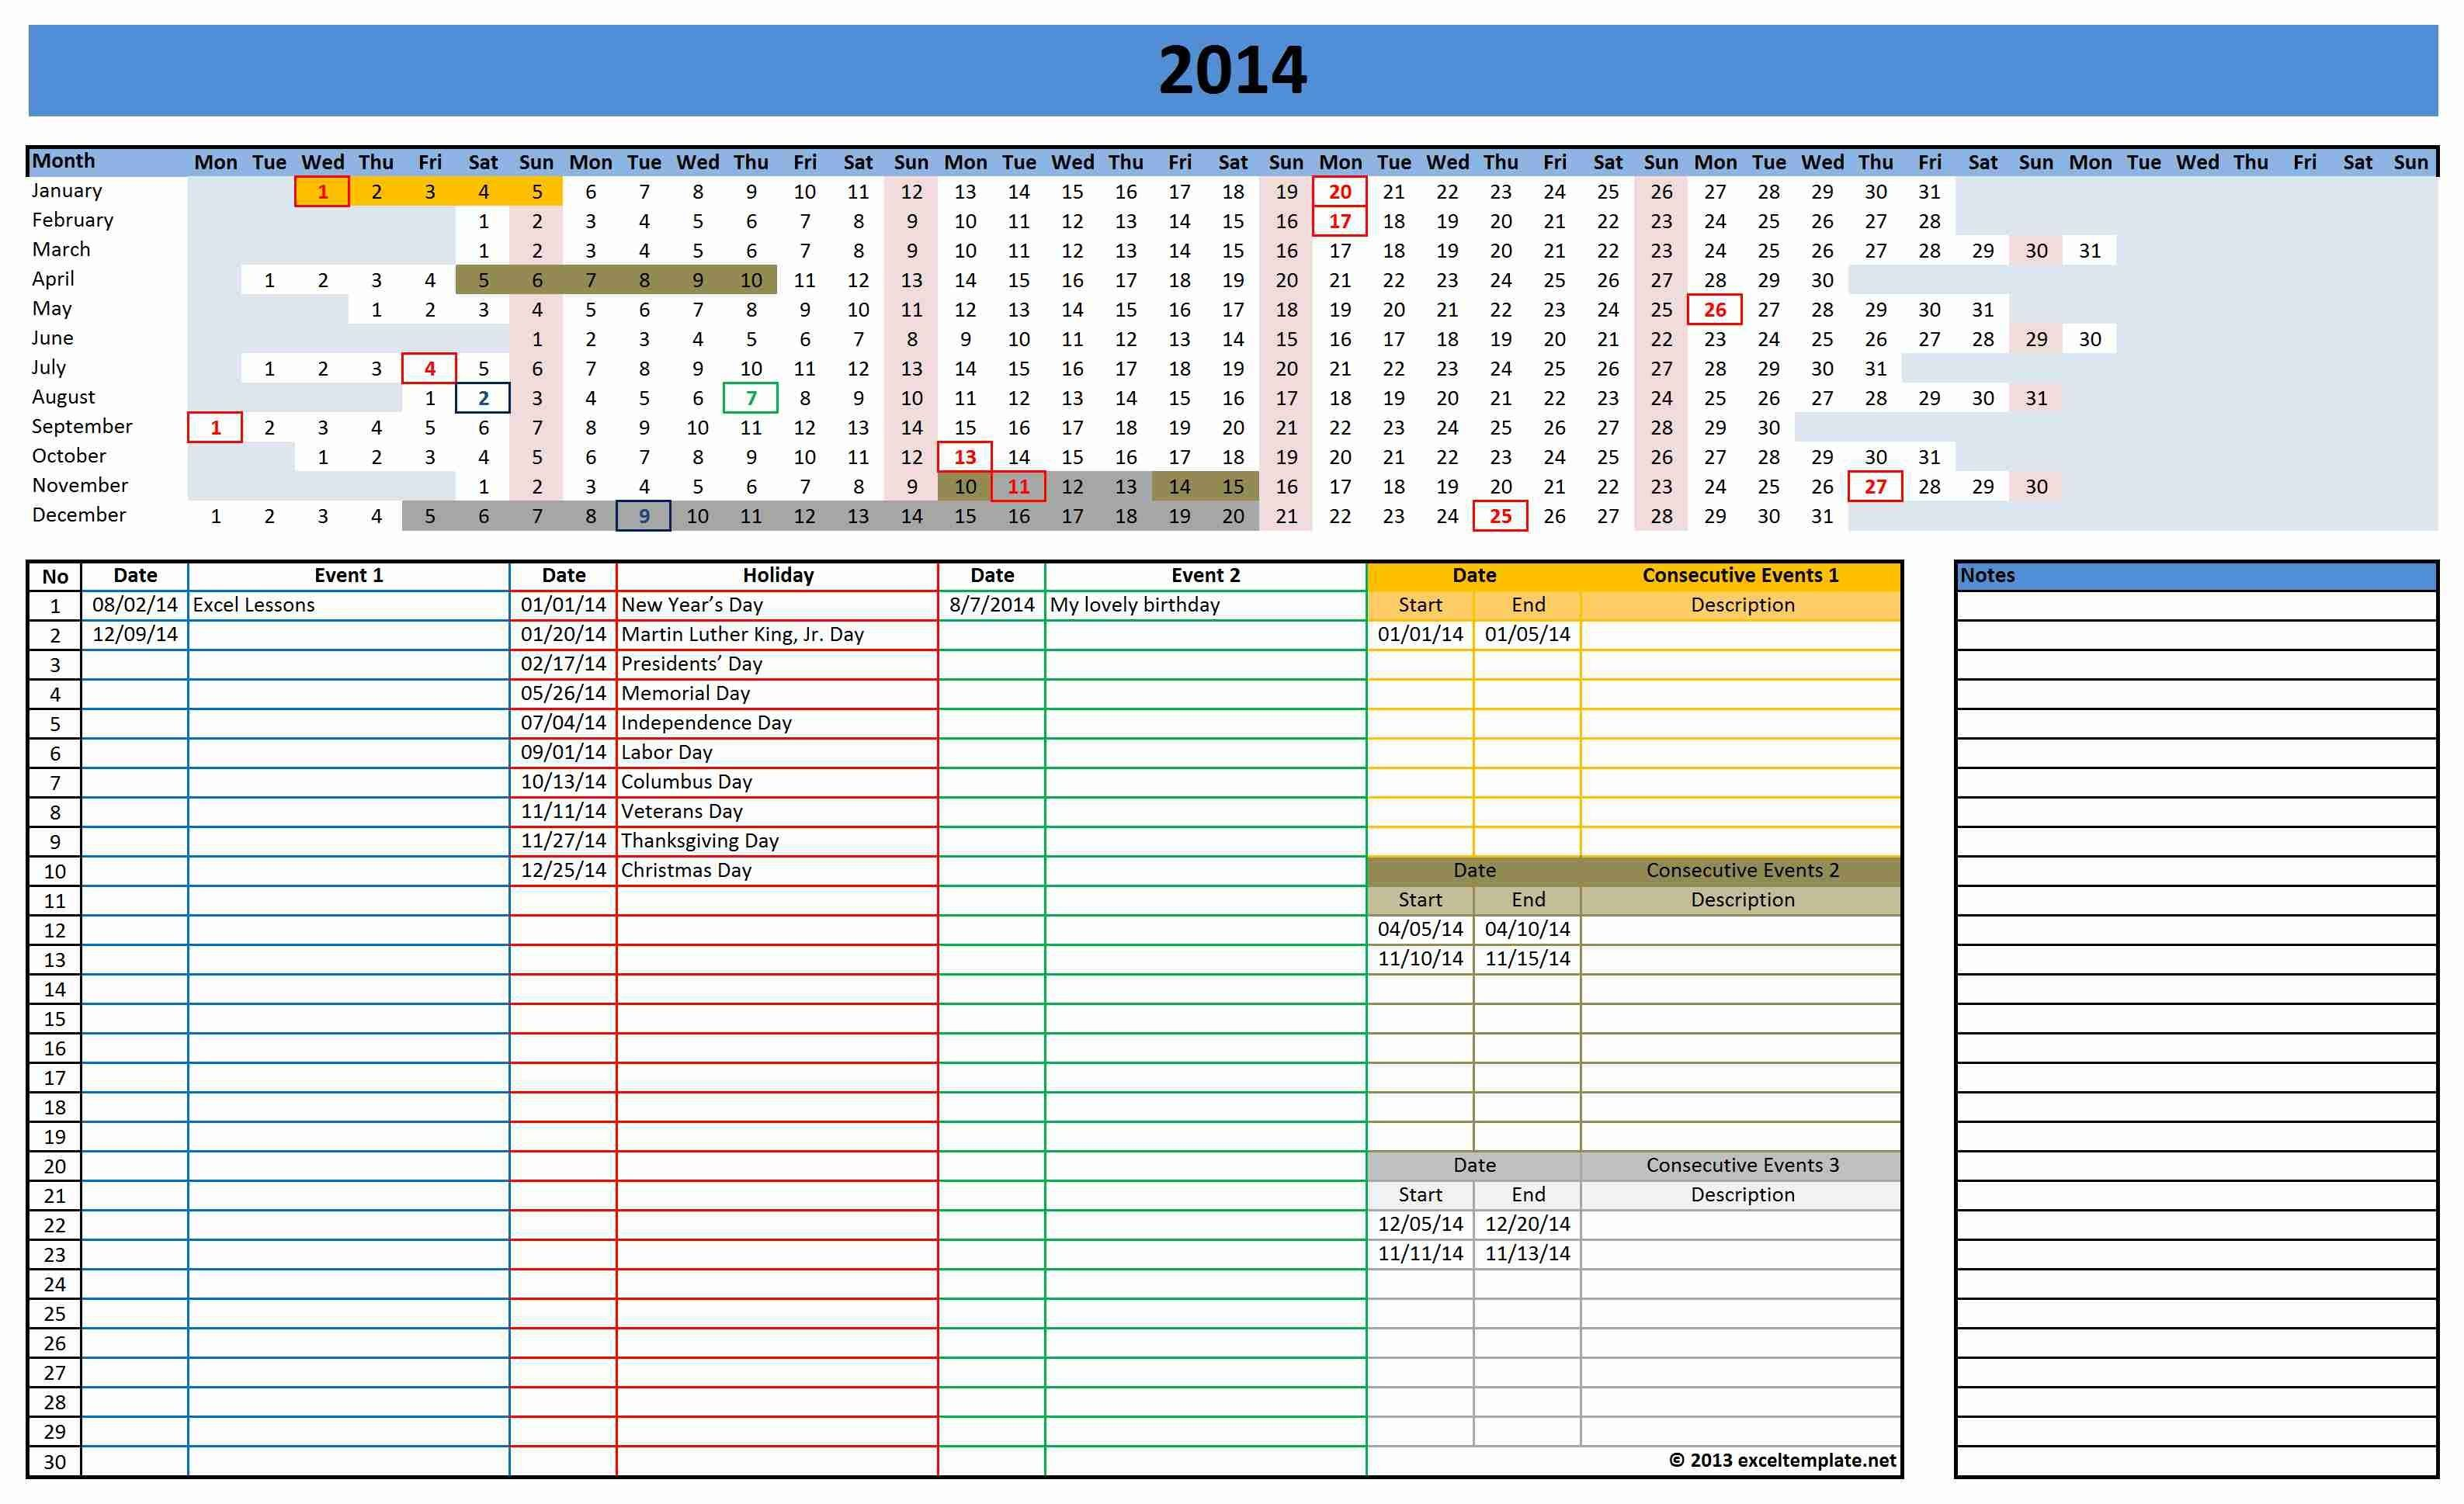 000 Excellent Microsoft Excel Calendar Template Idea  Office 2013 M Yearly 2019Full